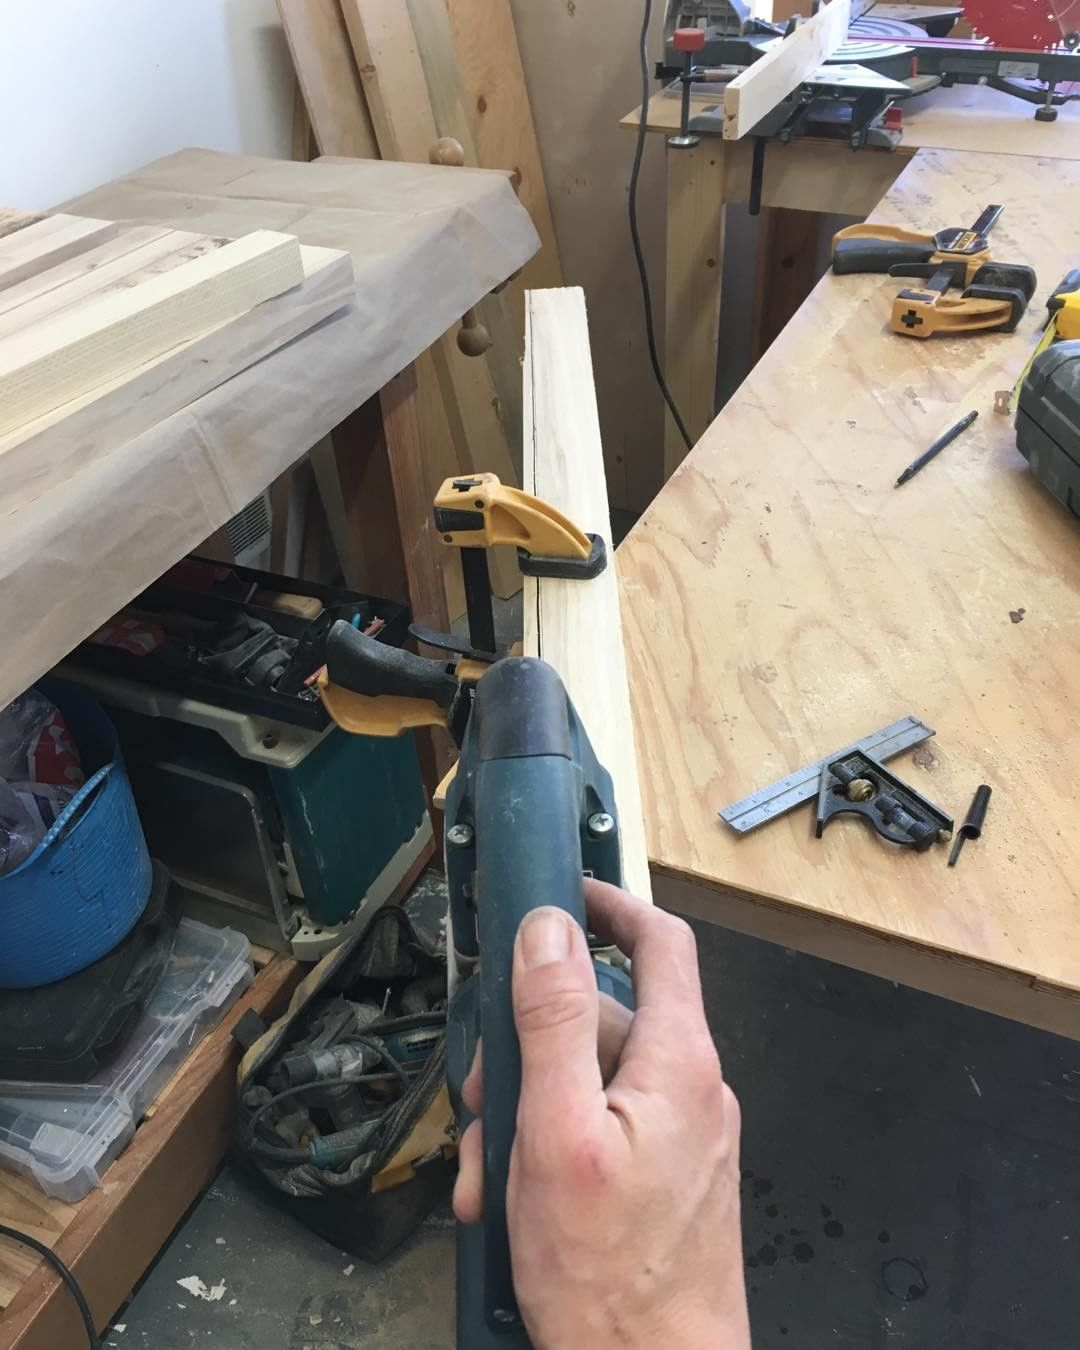 Finishing up the last cut with my old jig-saw. Don't give up easy.